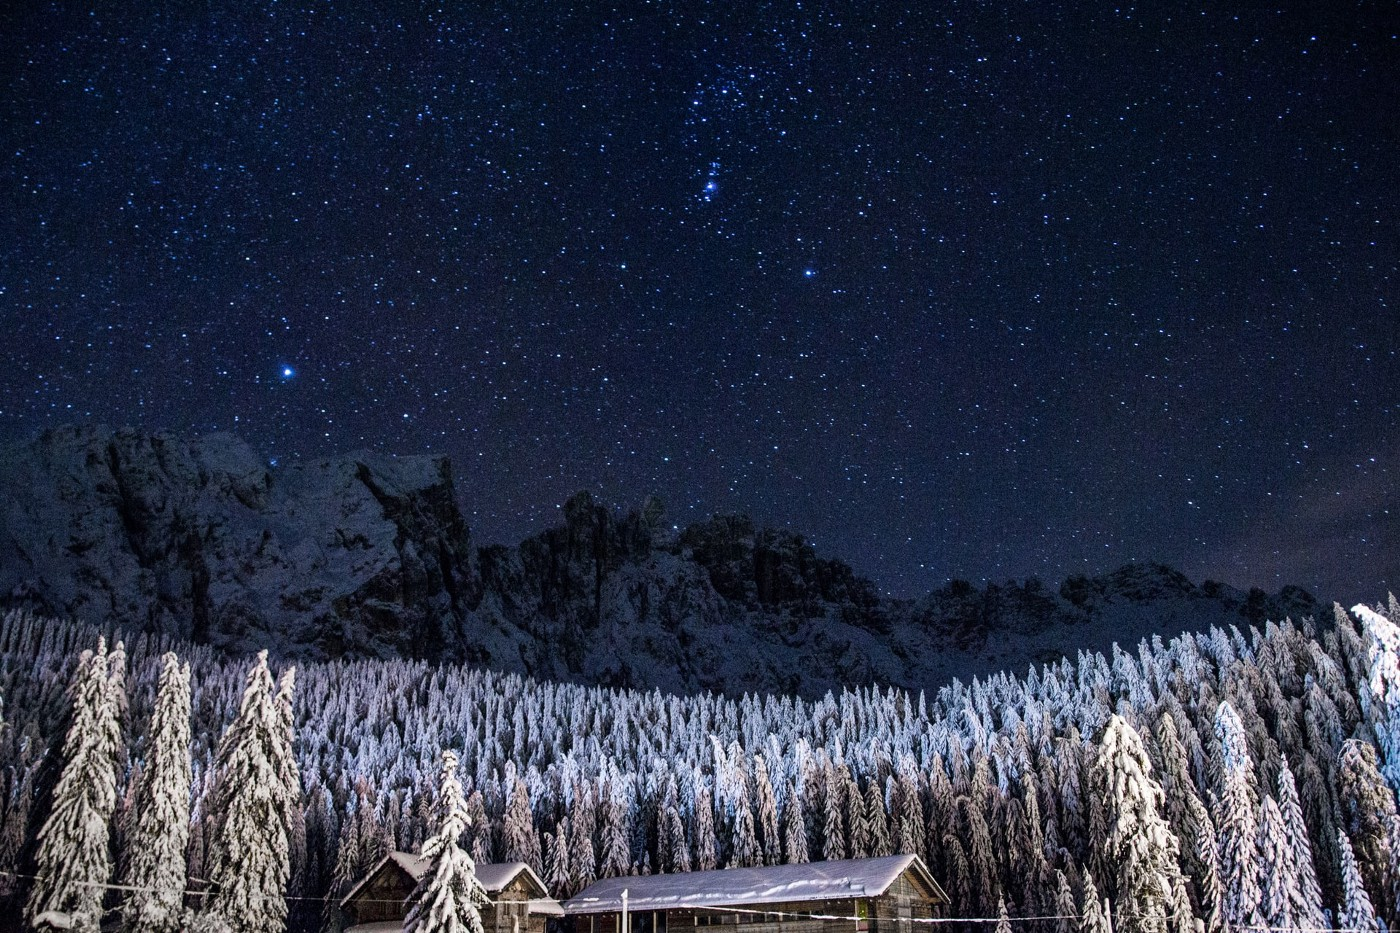 Night sky over a snowy forest